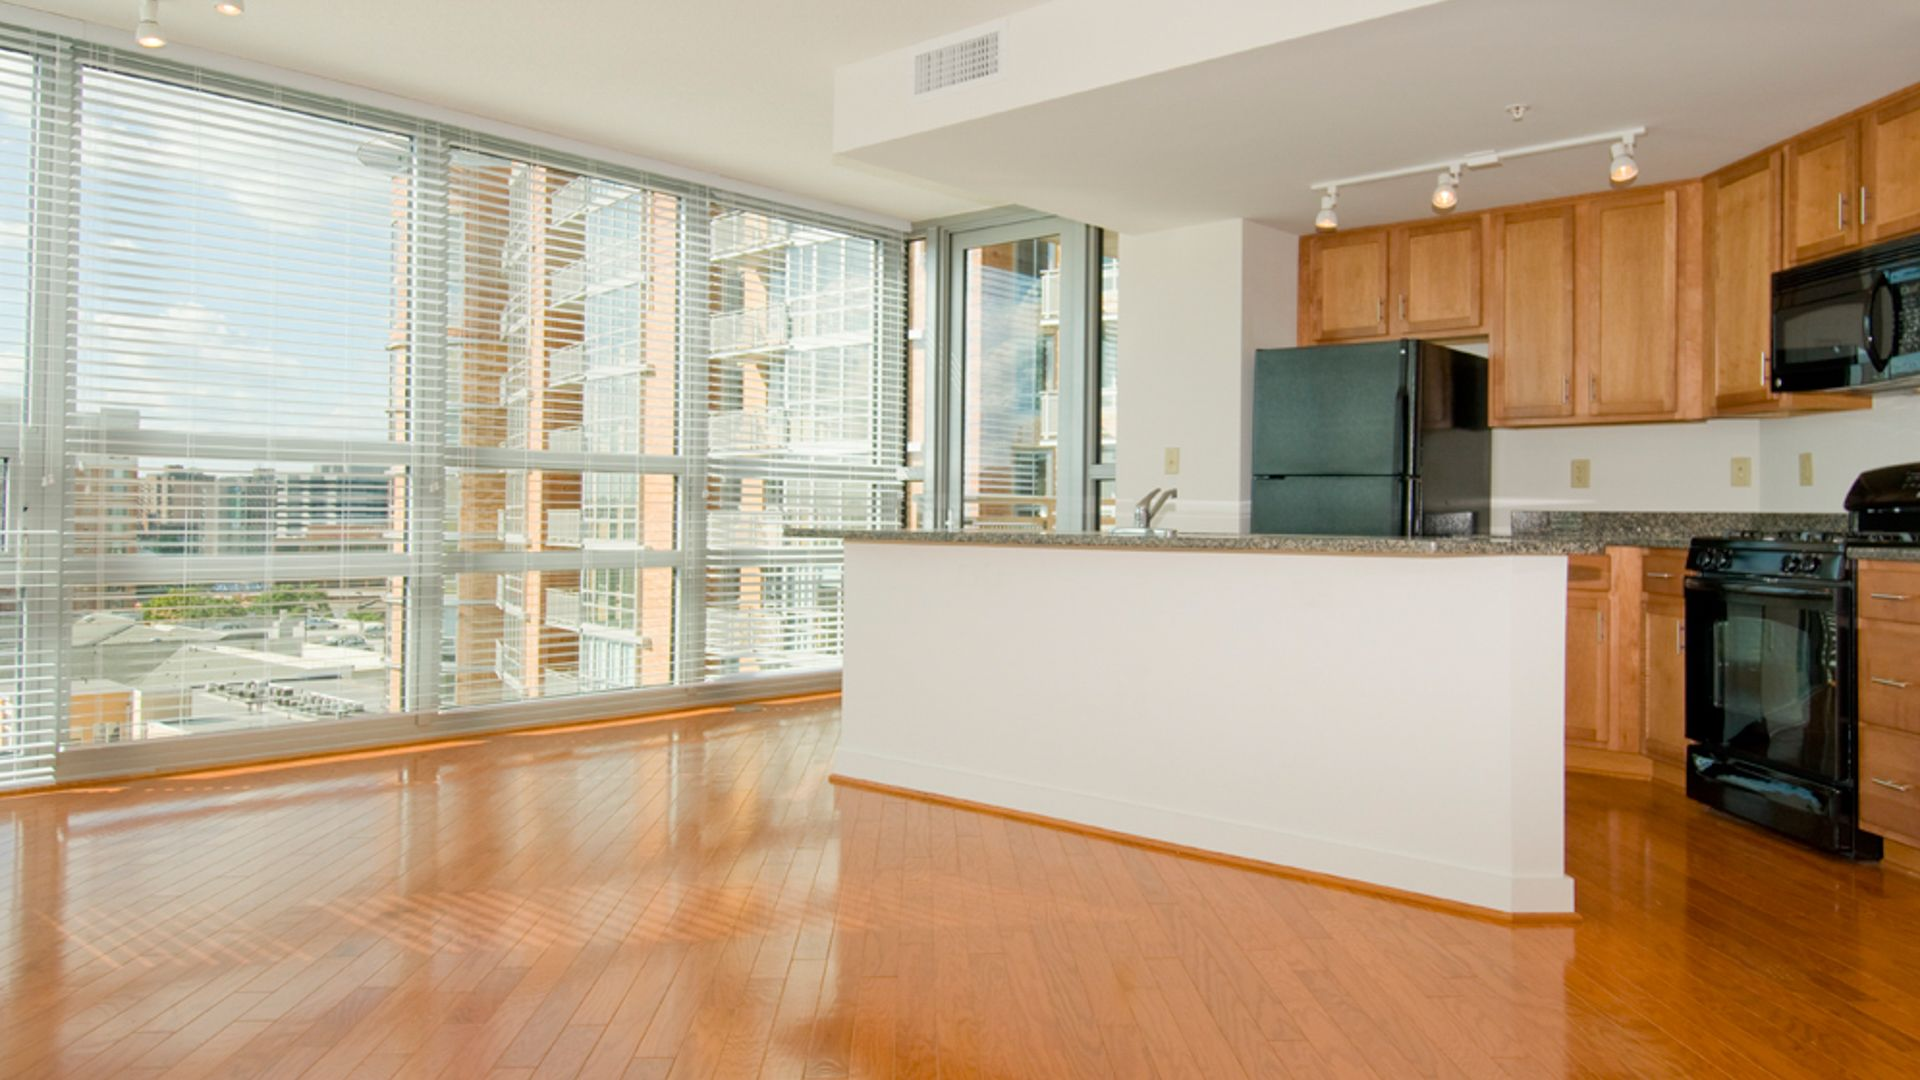 The Veridian Apartments - Kitchen and Dining Area